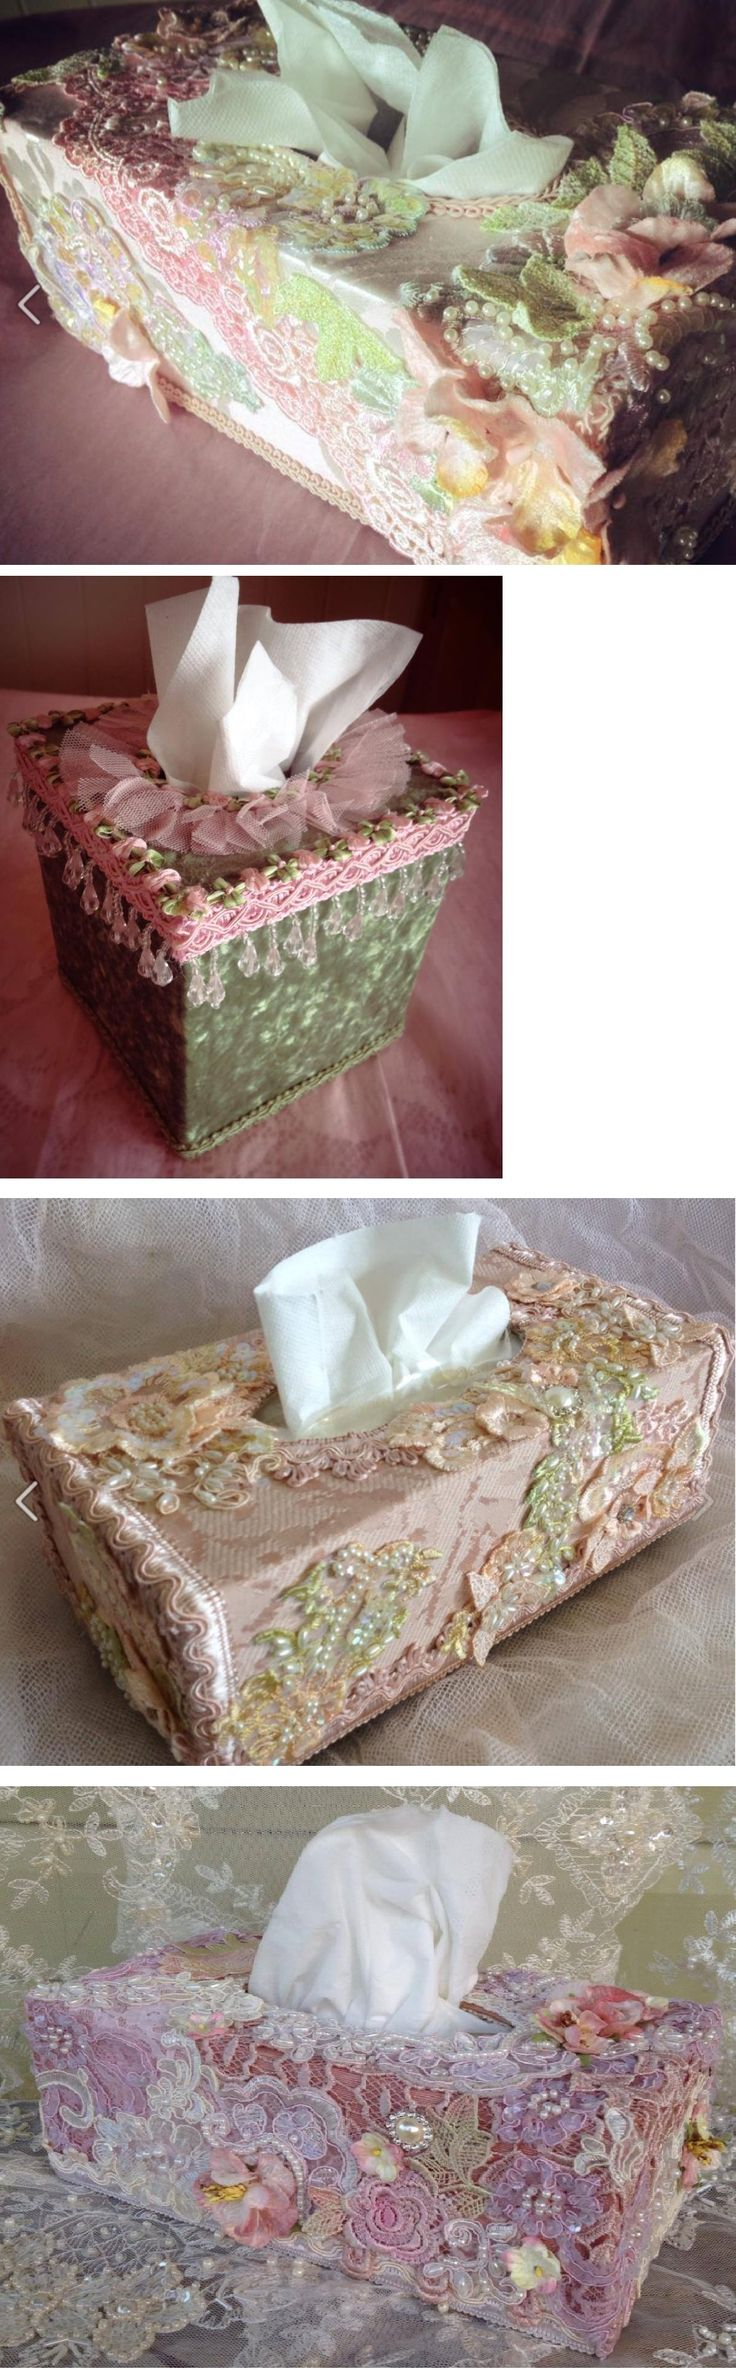 Pretty ideas for embellishing plain tissue box holders - love the combination of laces, beads, trims and flowers! :)